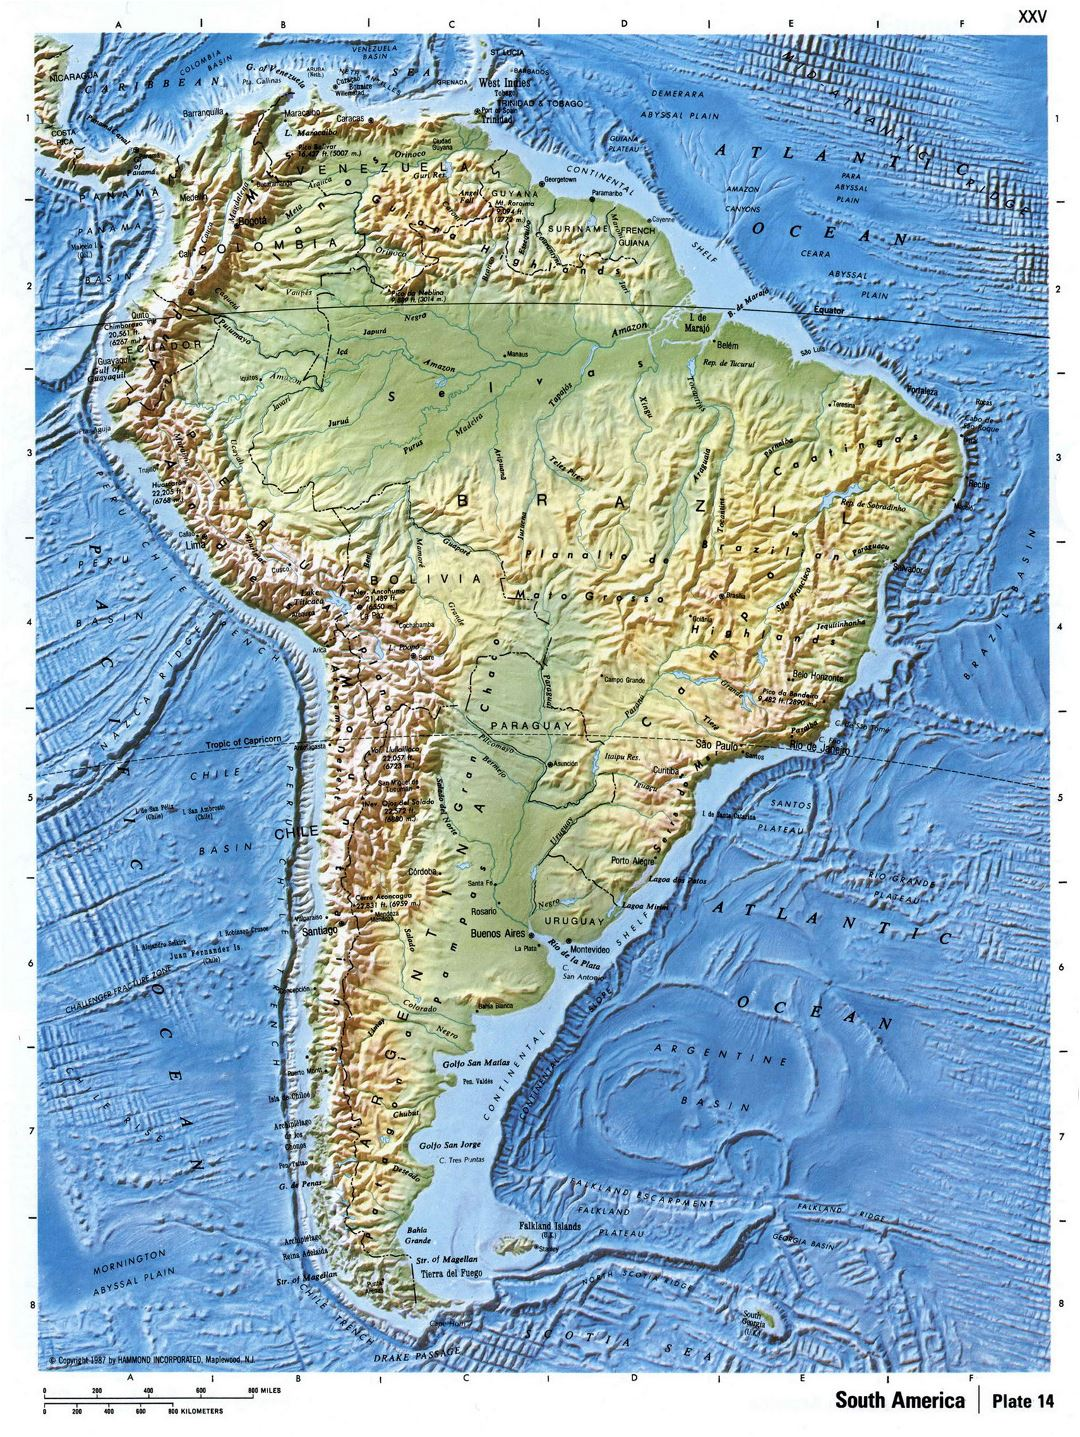 Detailed relief map of South America